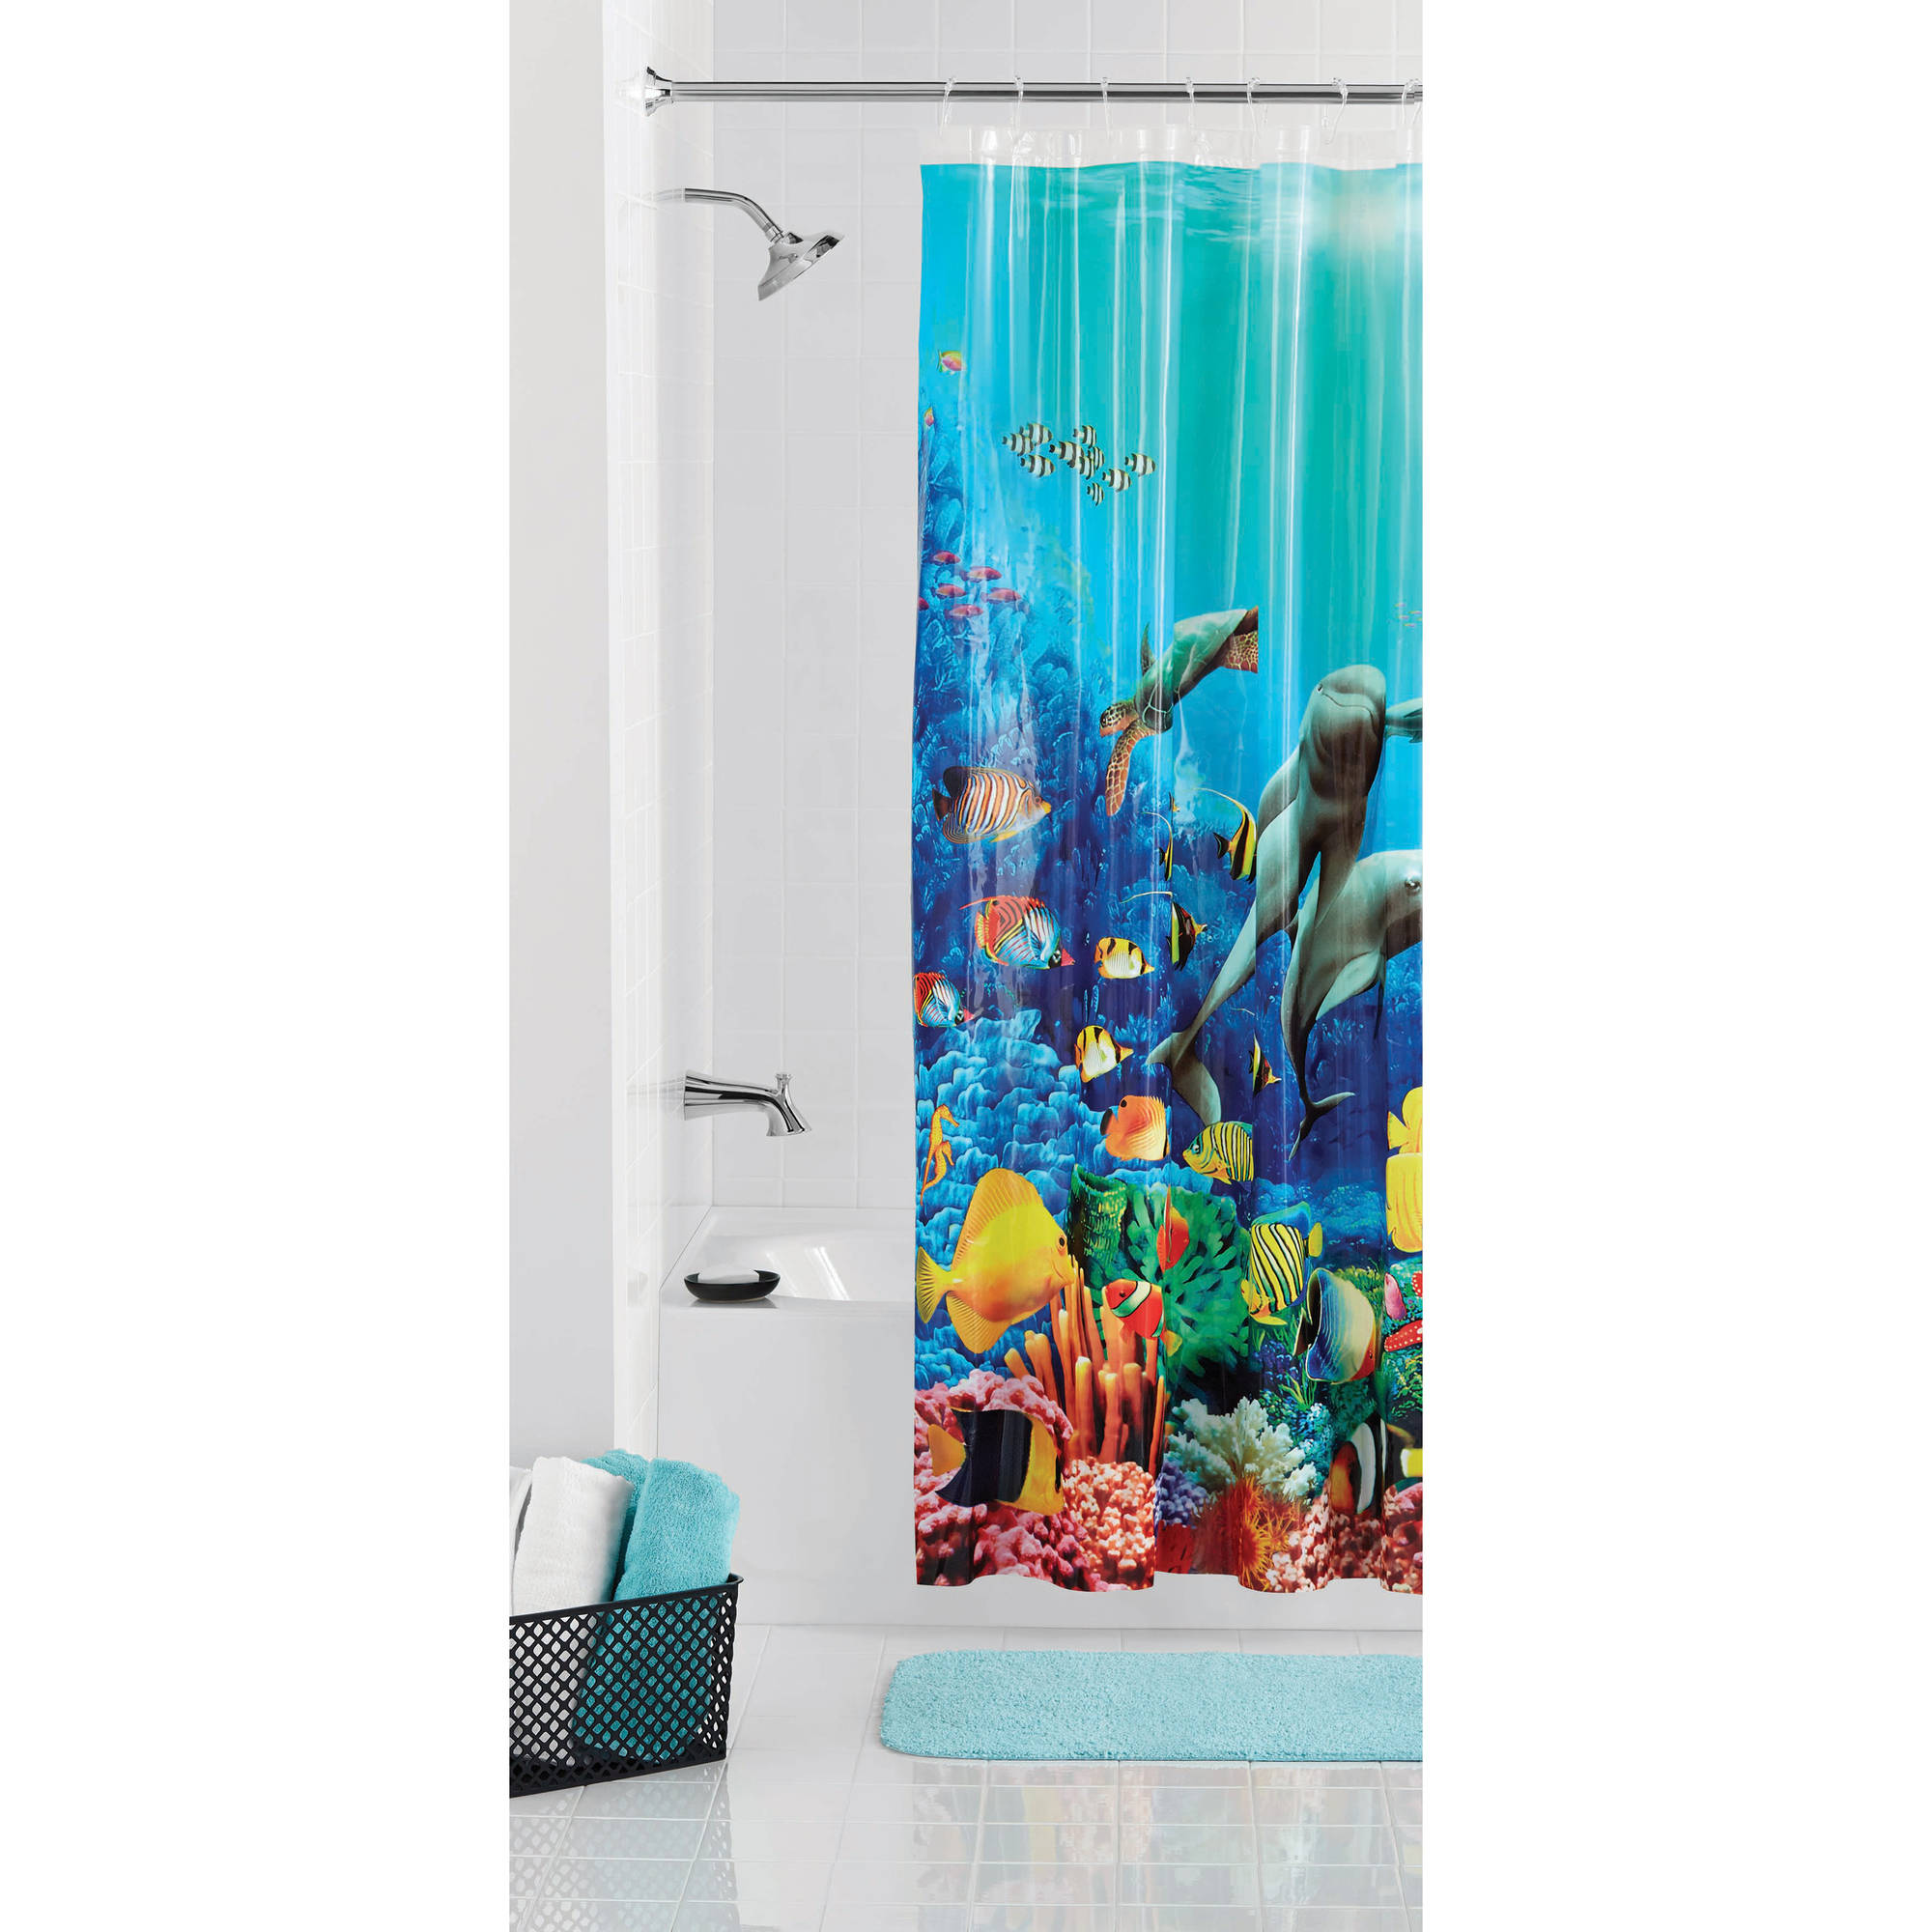 Teal shower curtain turquoise shower curtain abstract for Coral reef bathroom decor